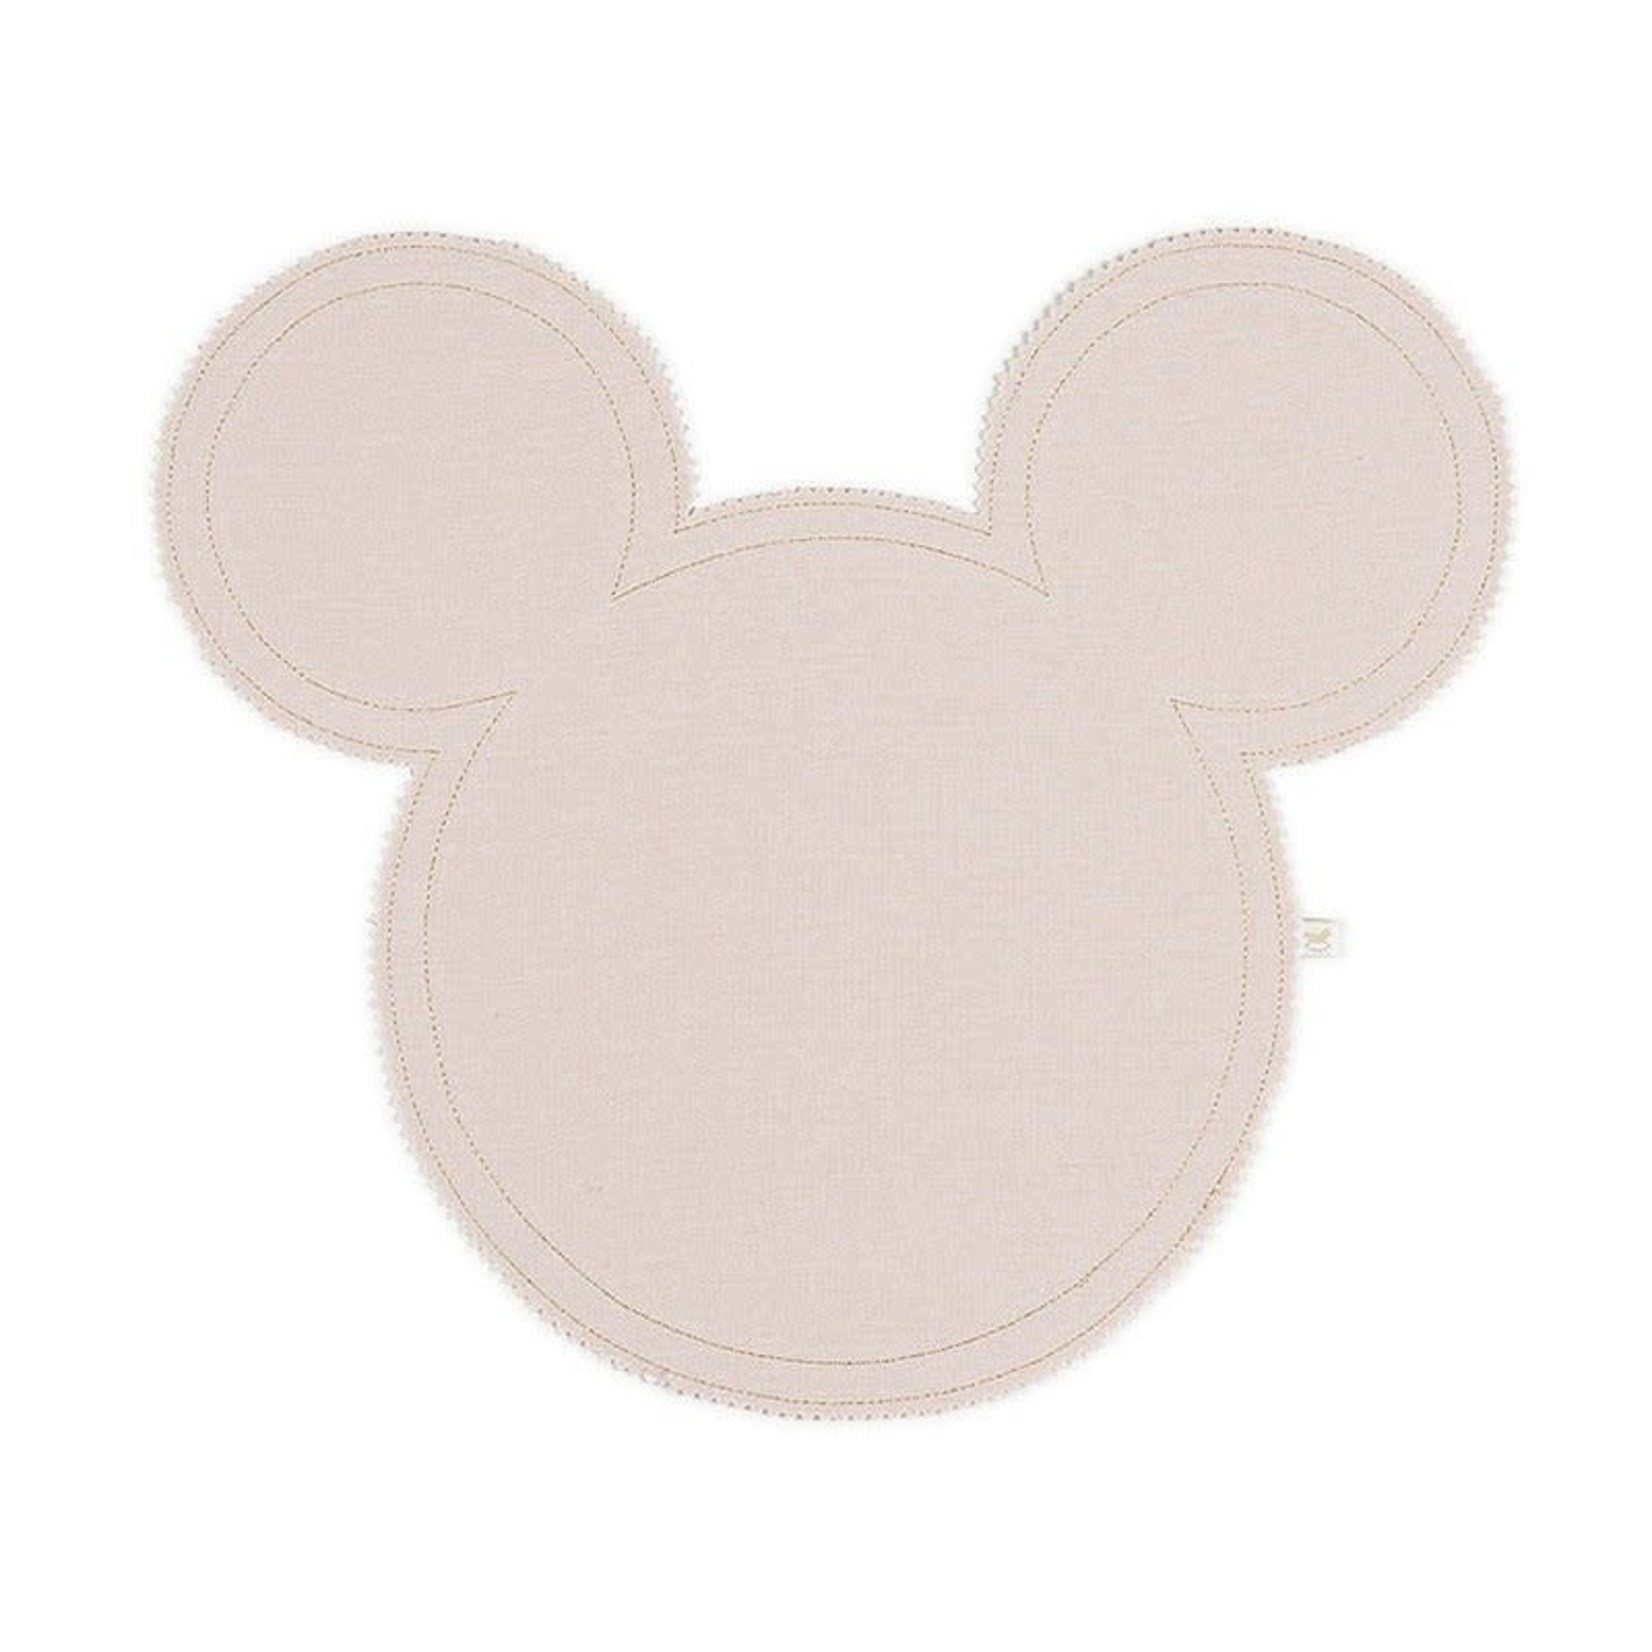 Cotton & Sweets Placemat - Powder Pink